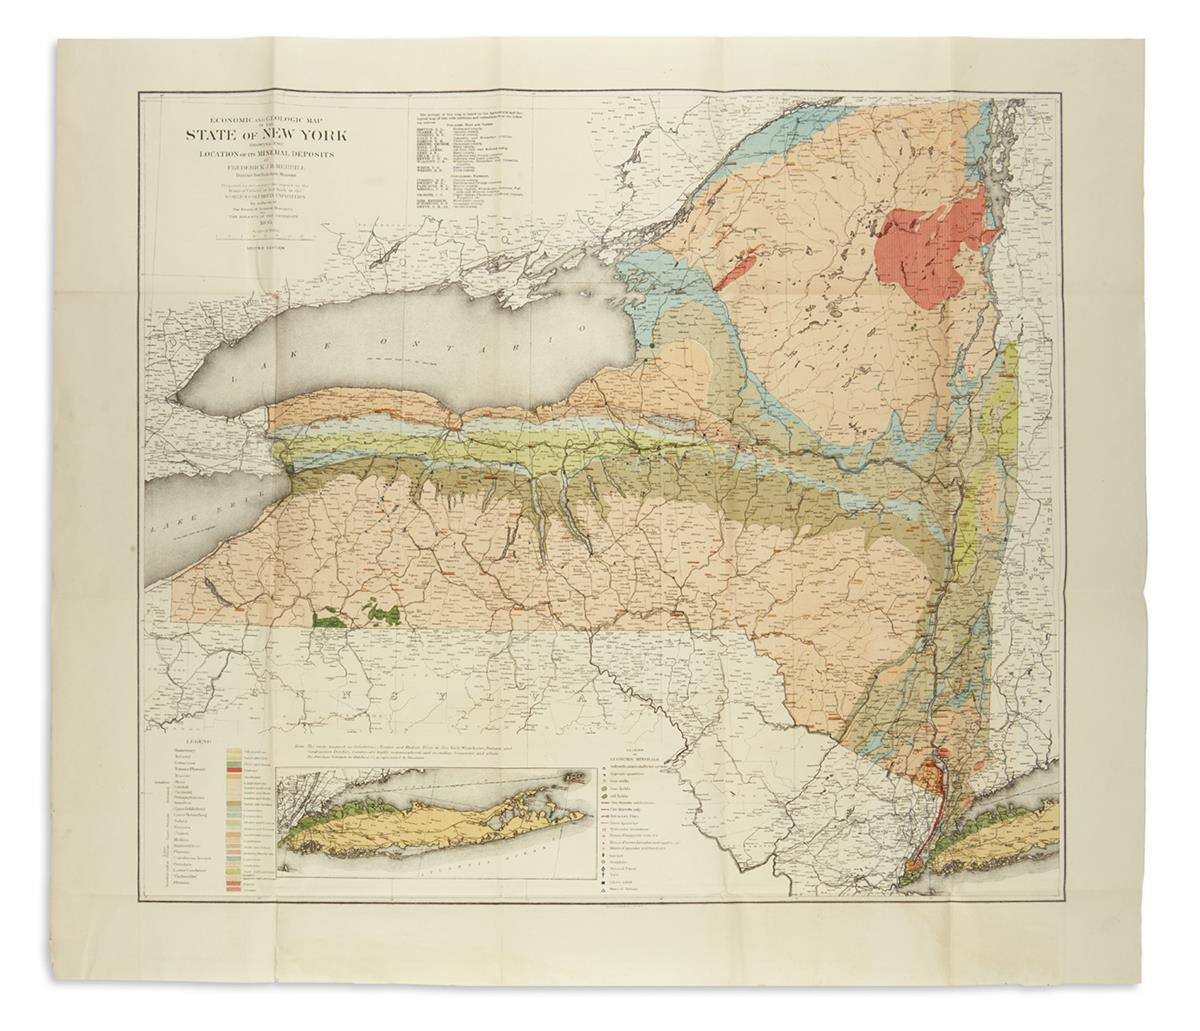 (NEW-YORK)-Merrill-Frederick-JH-Economic-and-Geologic-Map-of